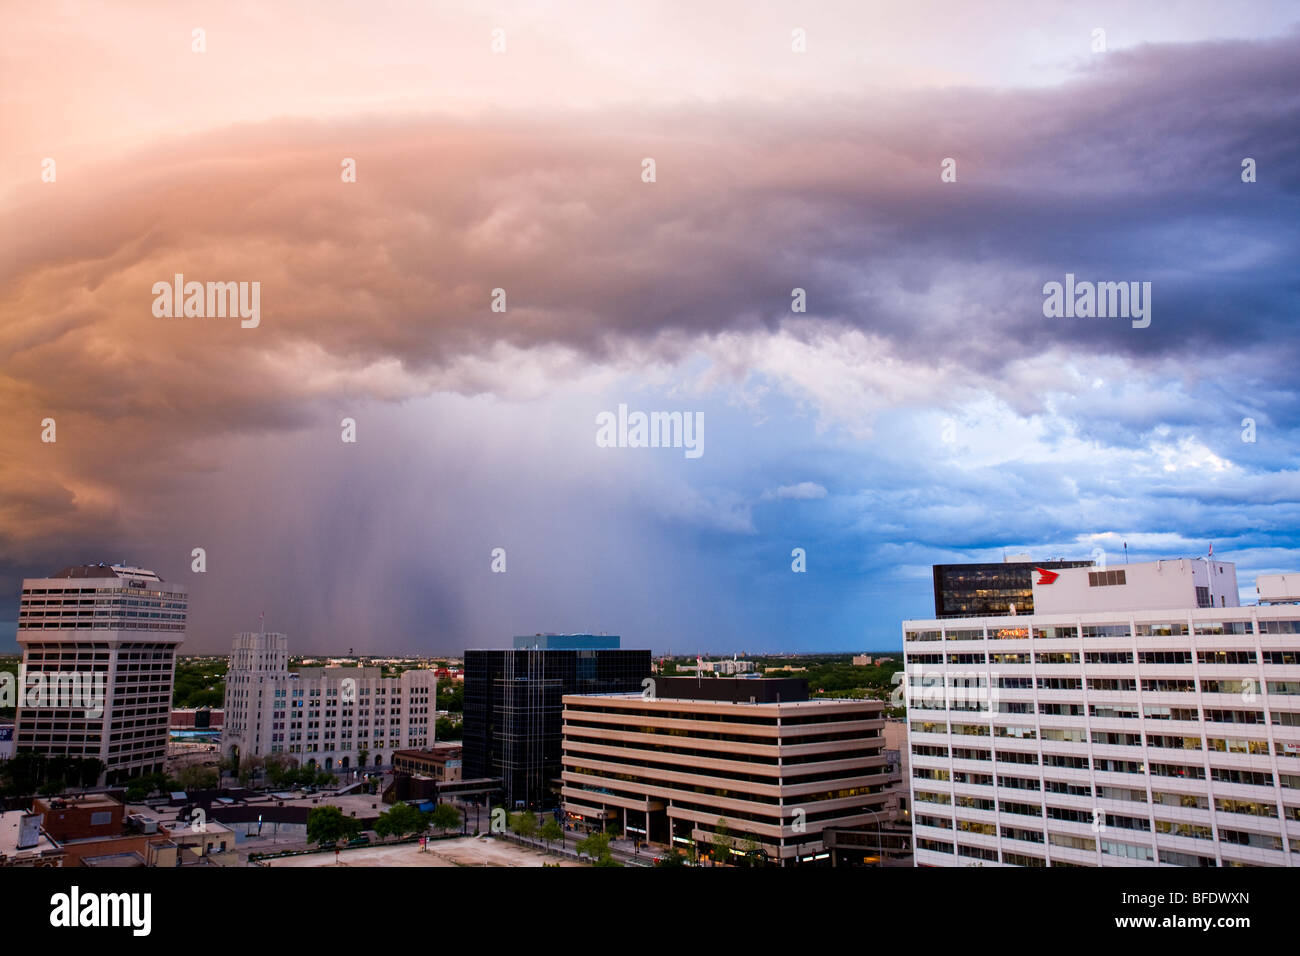 Colorful cloud formation at sunset over city of Winnipeg in Manitoba, Canada - Stock Image